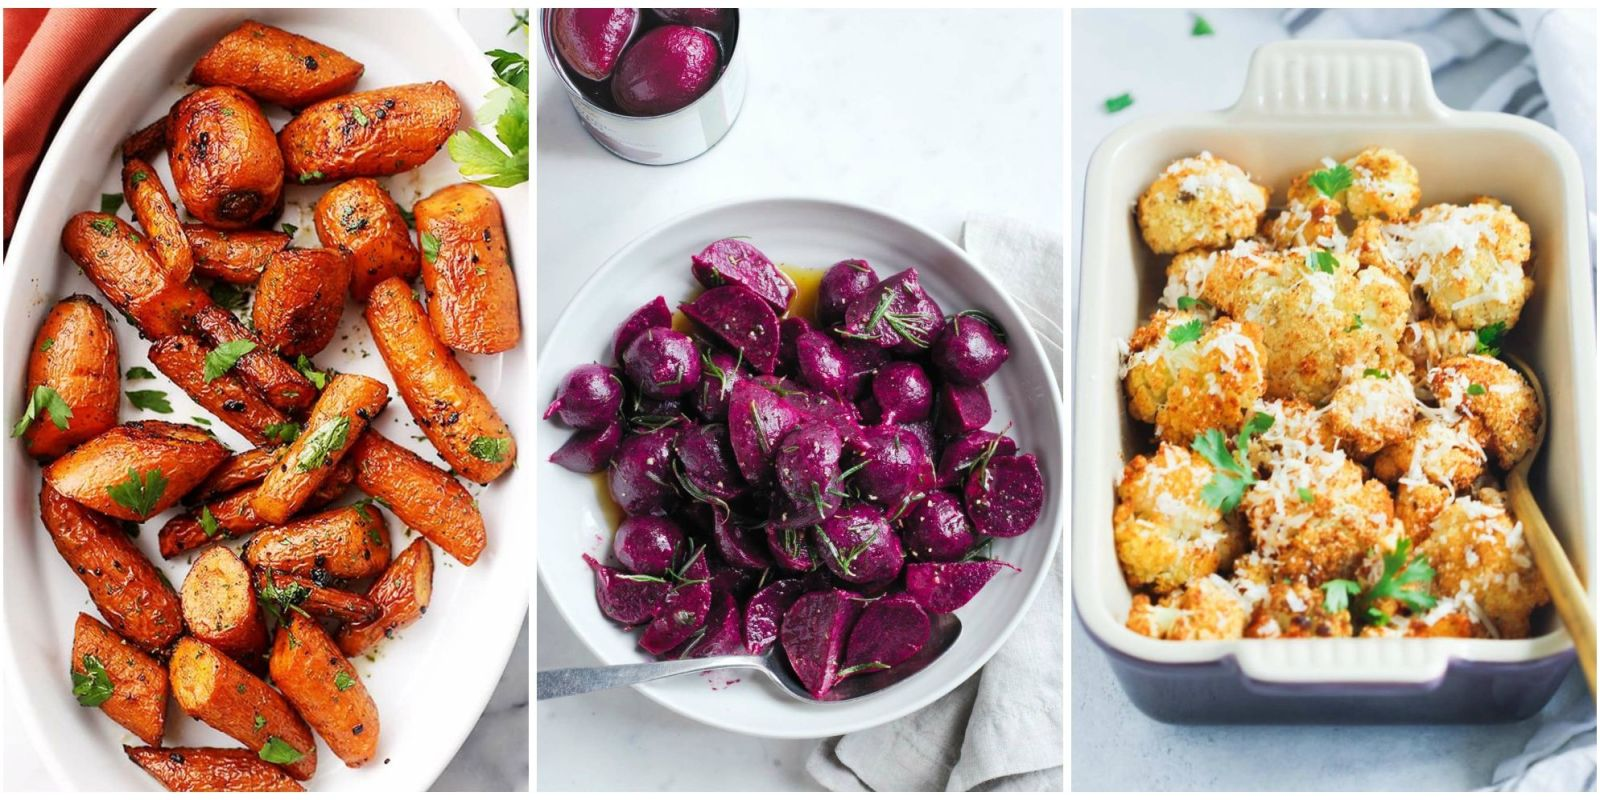 16 Thanksgiving Vegetable Side Dish Recipes